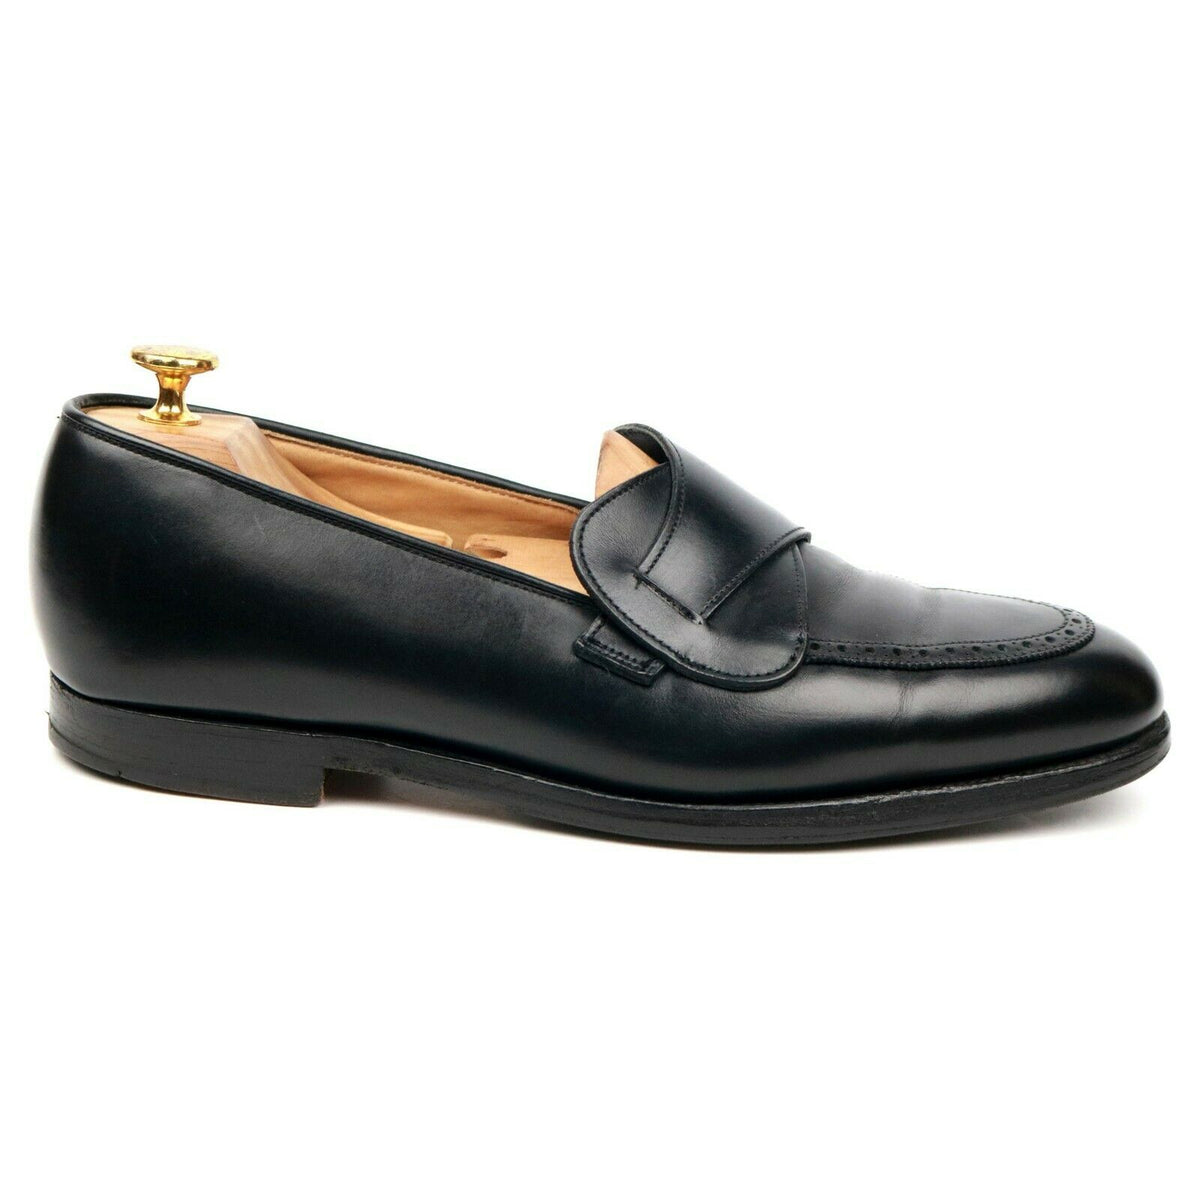 Crockett & Jones X Gieves & Hawkes Black Leather Butterfly Loafers UK 8 E